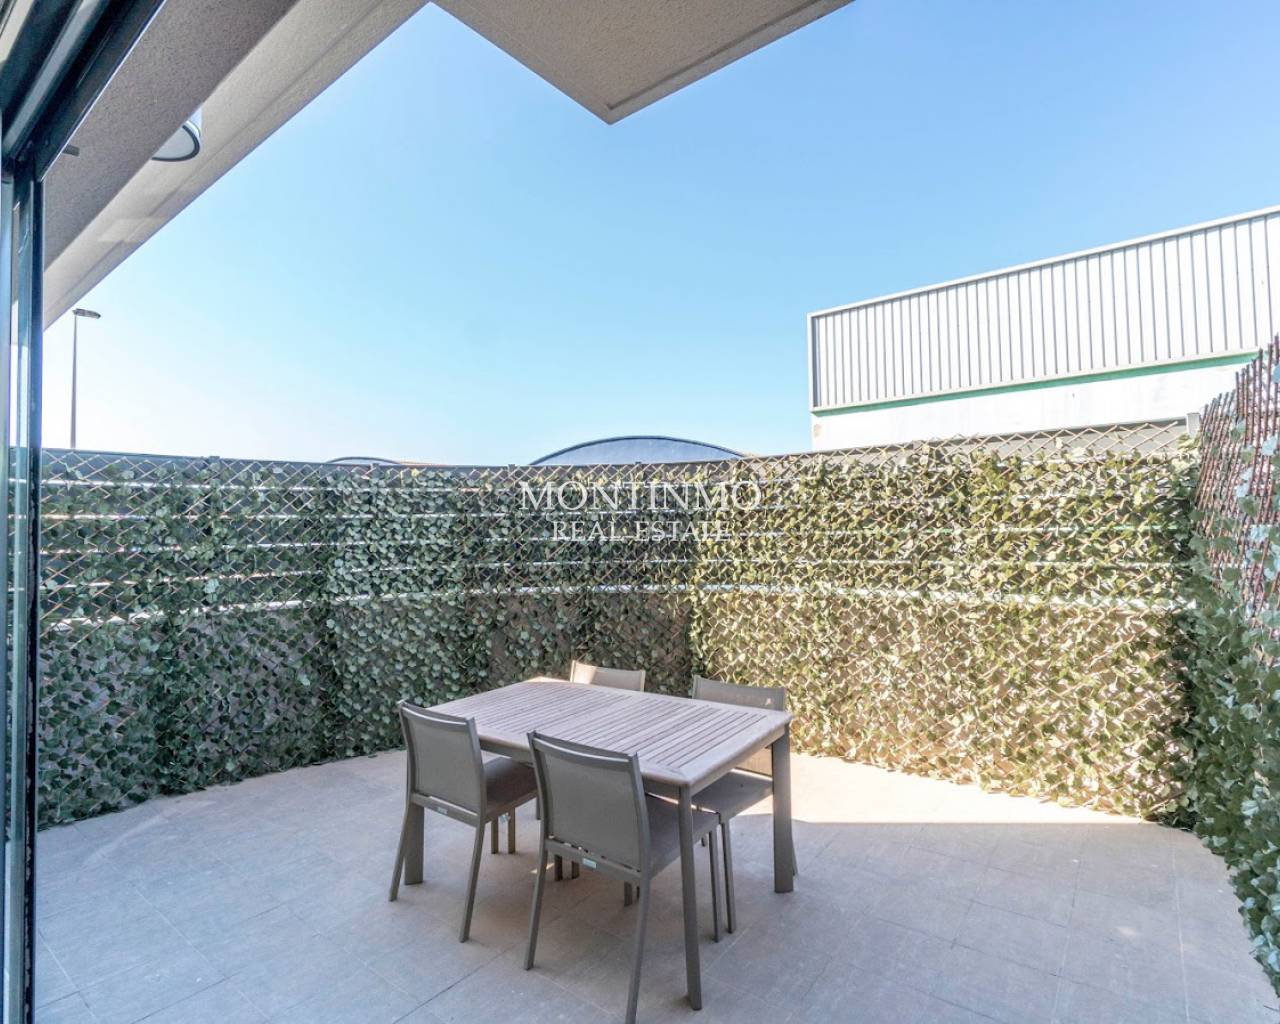 New Build - Bungalow - Santa Pola